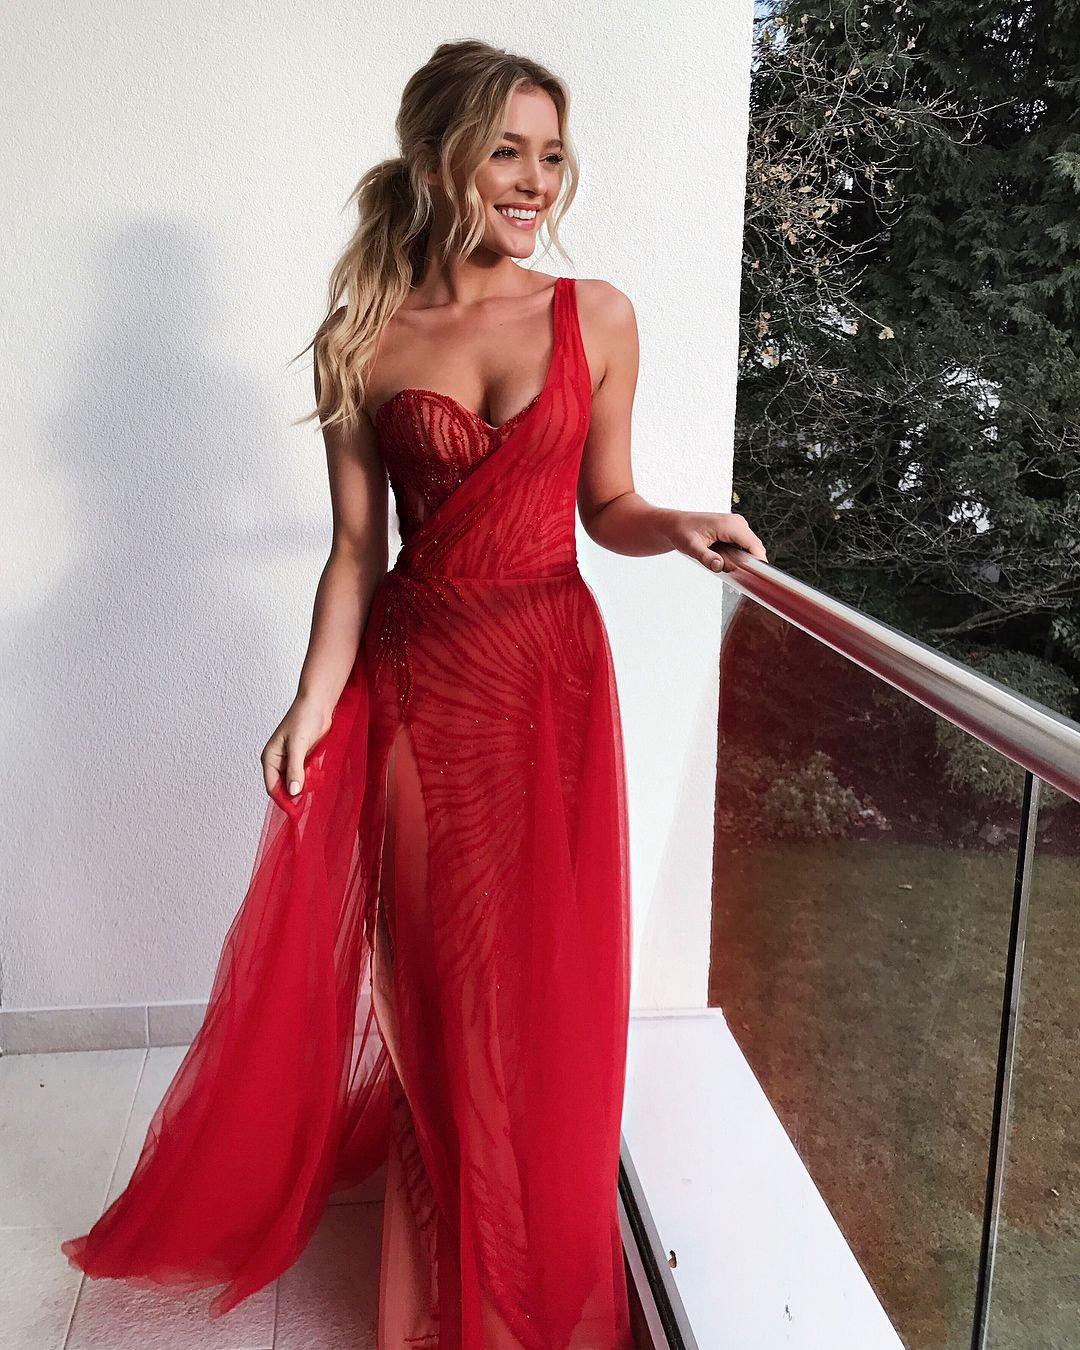 Pin By Hailey Colleen On Recreate Pics Dresses Prom Dresses Fashion